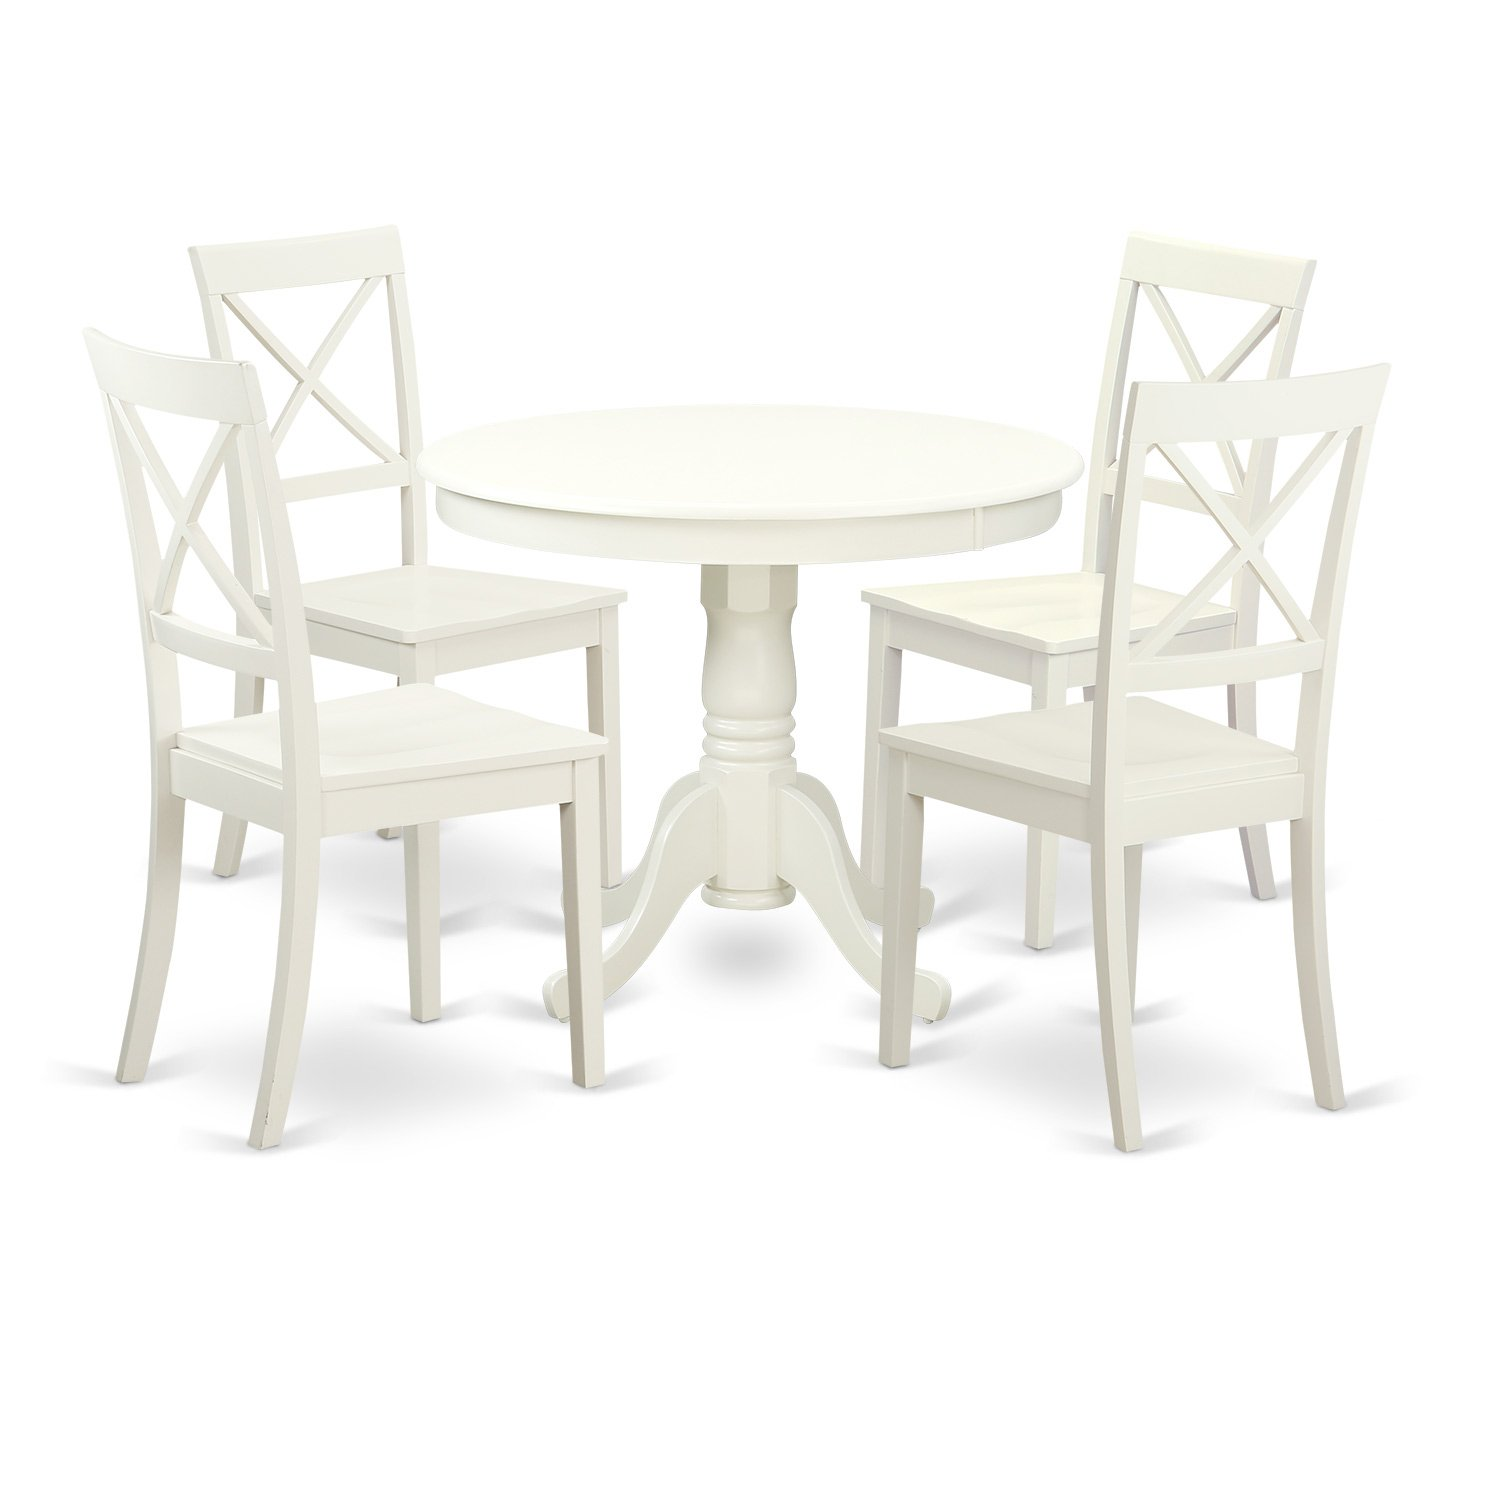 East West Furniture ANBO5-LWH-W 5 PC Set with One Table & Four Wood Seat Dinette Chairs Having A Beautiful Linen